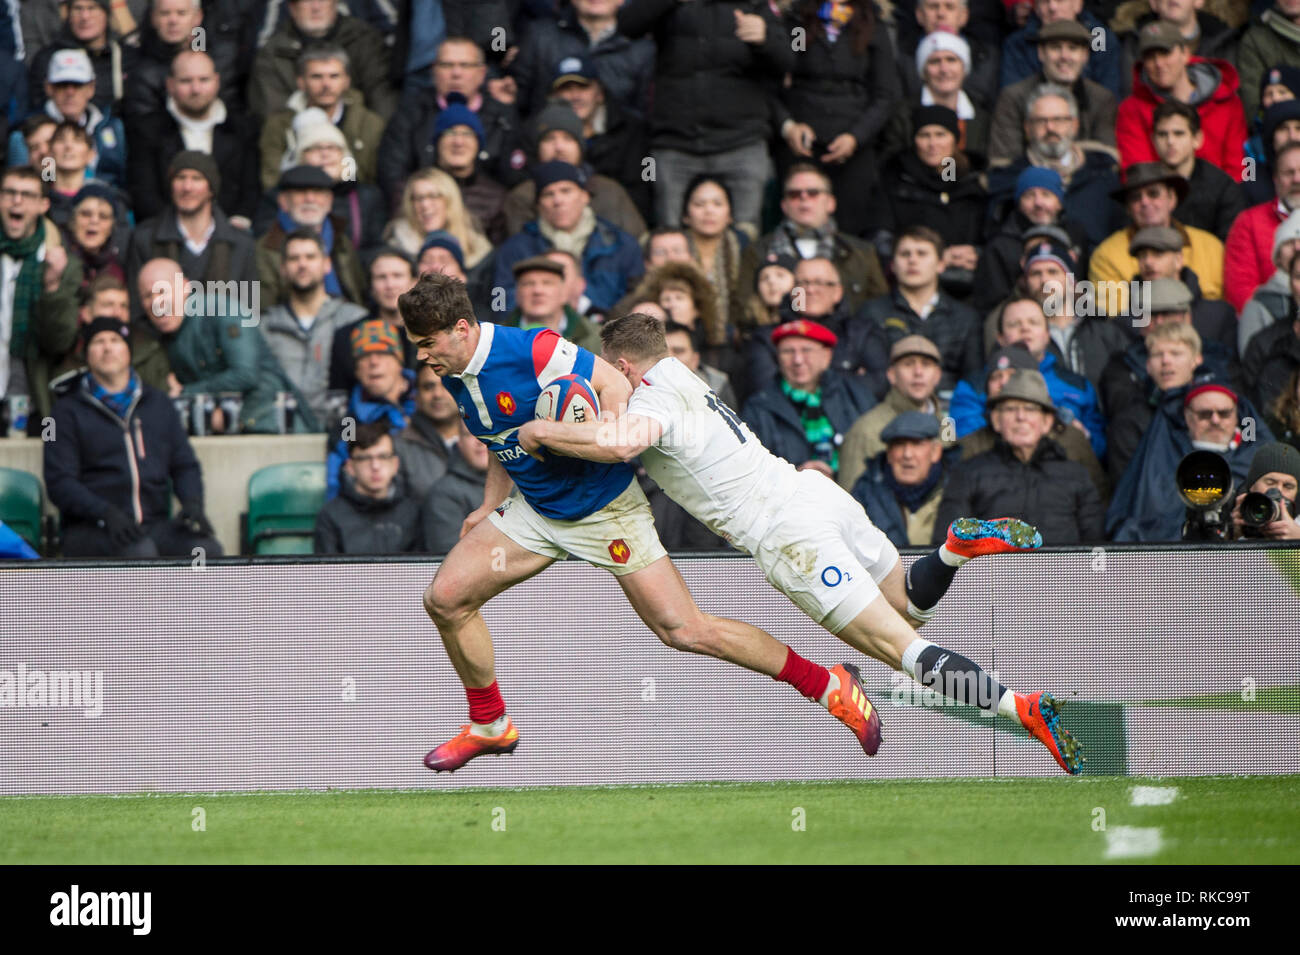 Twickenham, United Kingdom. 7th February, Chris ASHTON, carried by Damiam PENAUD, as go's in for a try, during the England vs France, 2019 Guinness Six Nations Rugby Match  played at  the  RFU Stadium, Twickenham, England,  © PeterSPURRIER: Intersport Images Credit: Peter SPURRIER/Alamy Live News Stock Photo